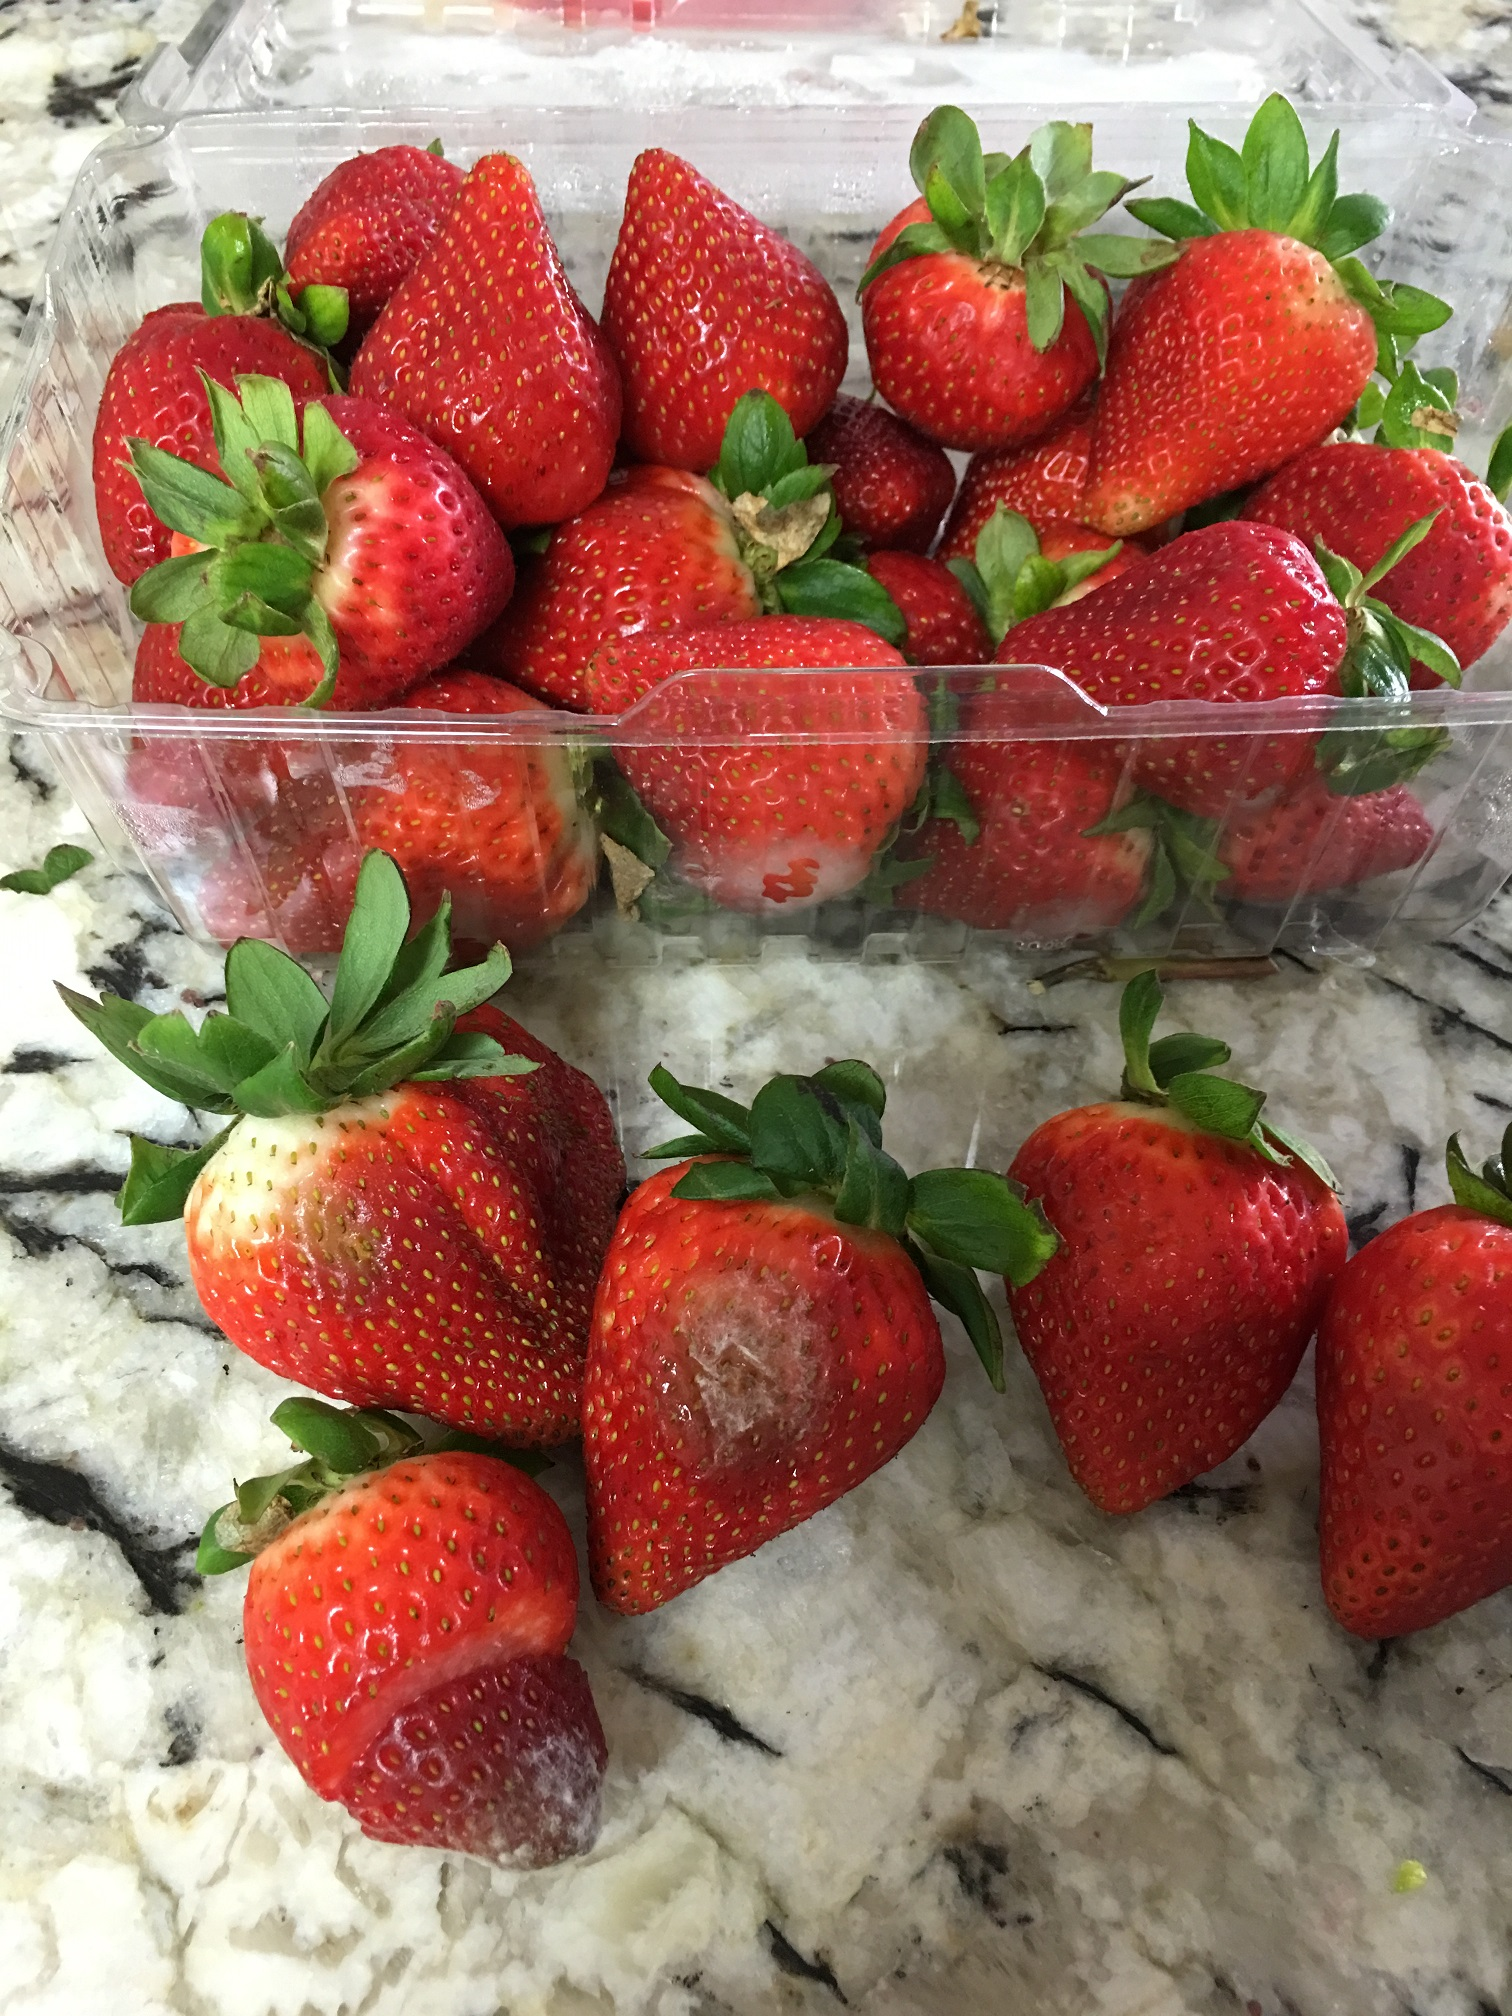 costco customer service complaints department hissingkitty com costco sunnyvale costco store ca 94086 one the boxes had rotten strawberries fungus on them our membership number is 111845756733